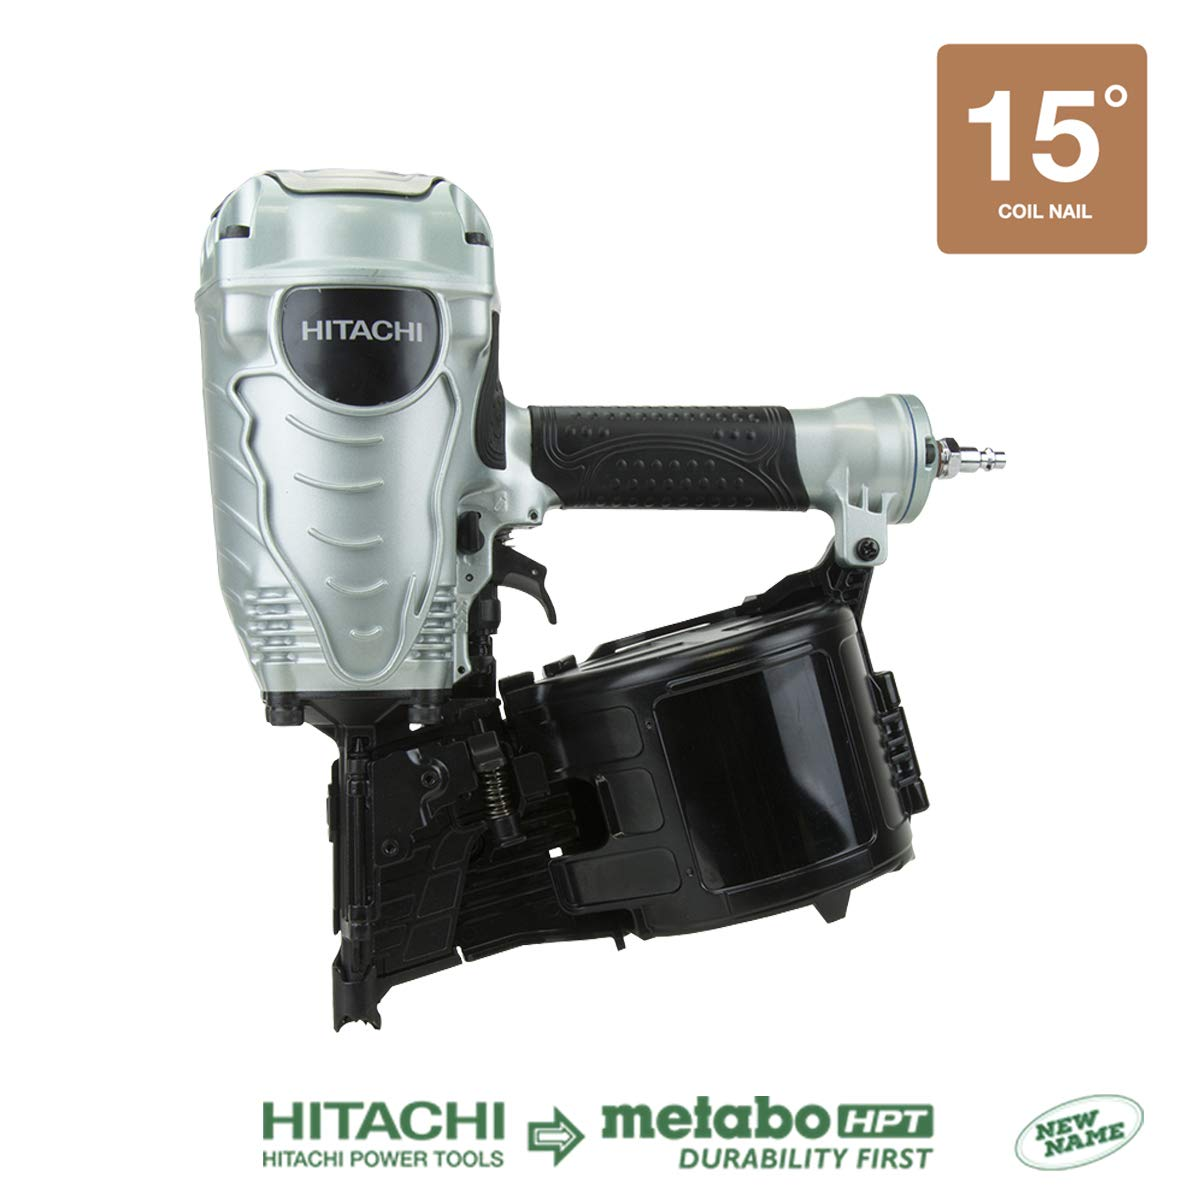 Hitachi NV90AGS 1-3 4-Inch to 3-1 2-Inch Coil Framing Nailer Discontinued by the Manufacturer